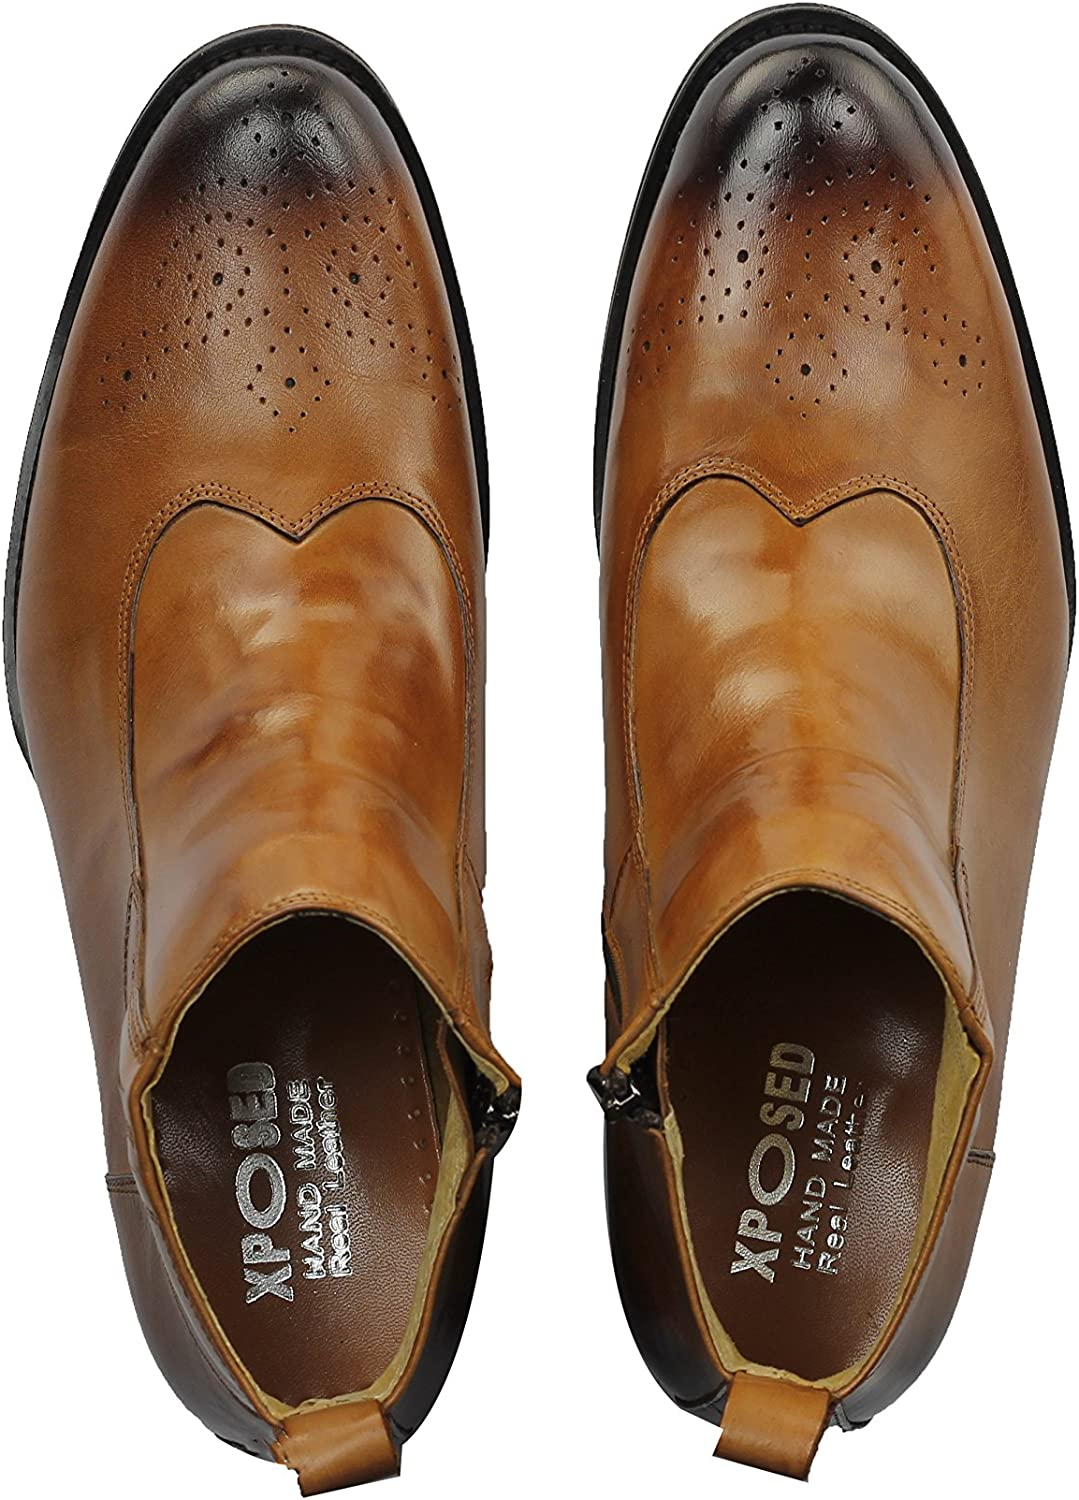 Mens Real Leather Tan Brown Side Zip Retro Brogue Boots Smart Casual Dress Shoes